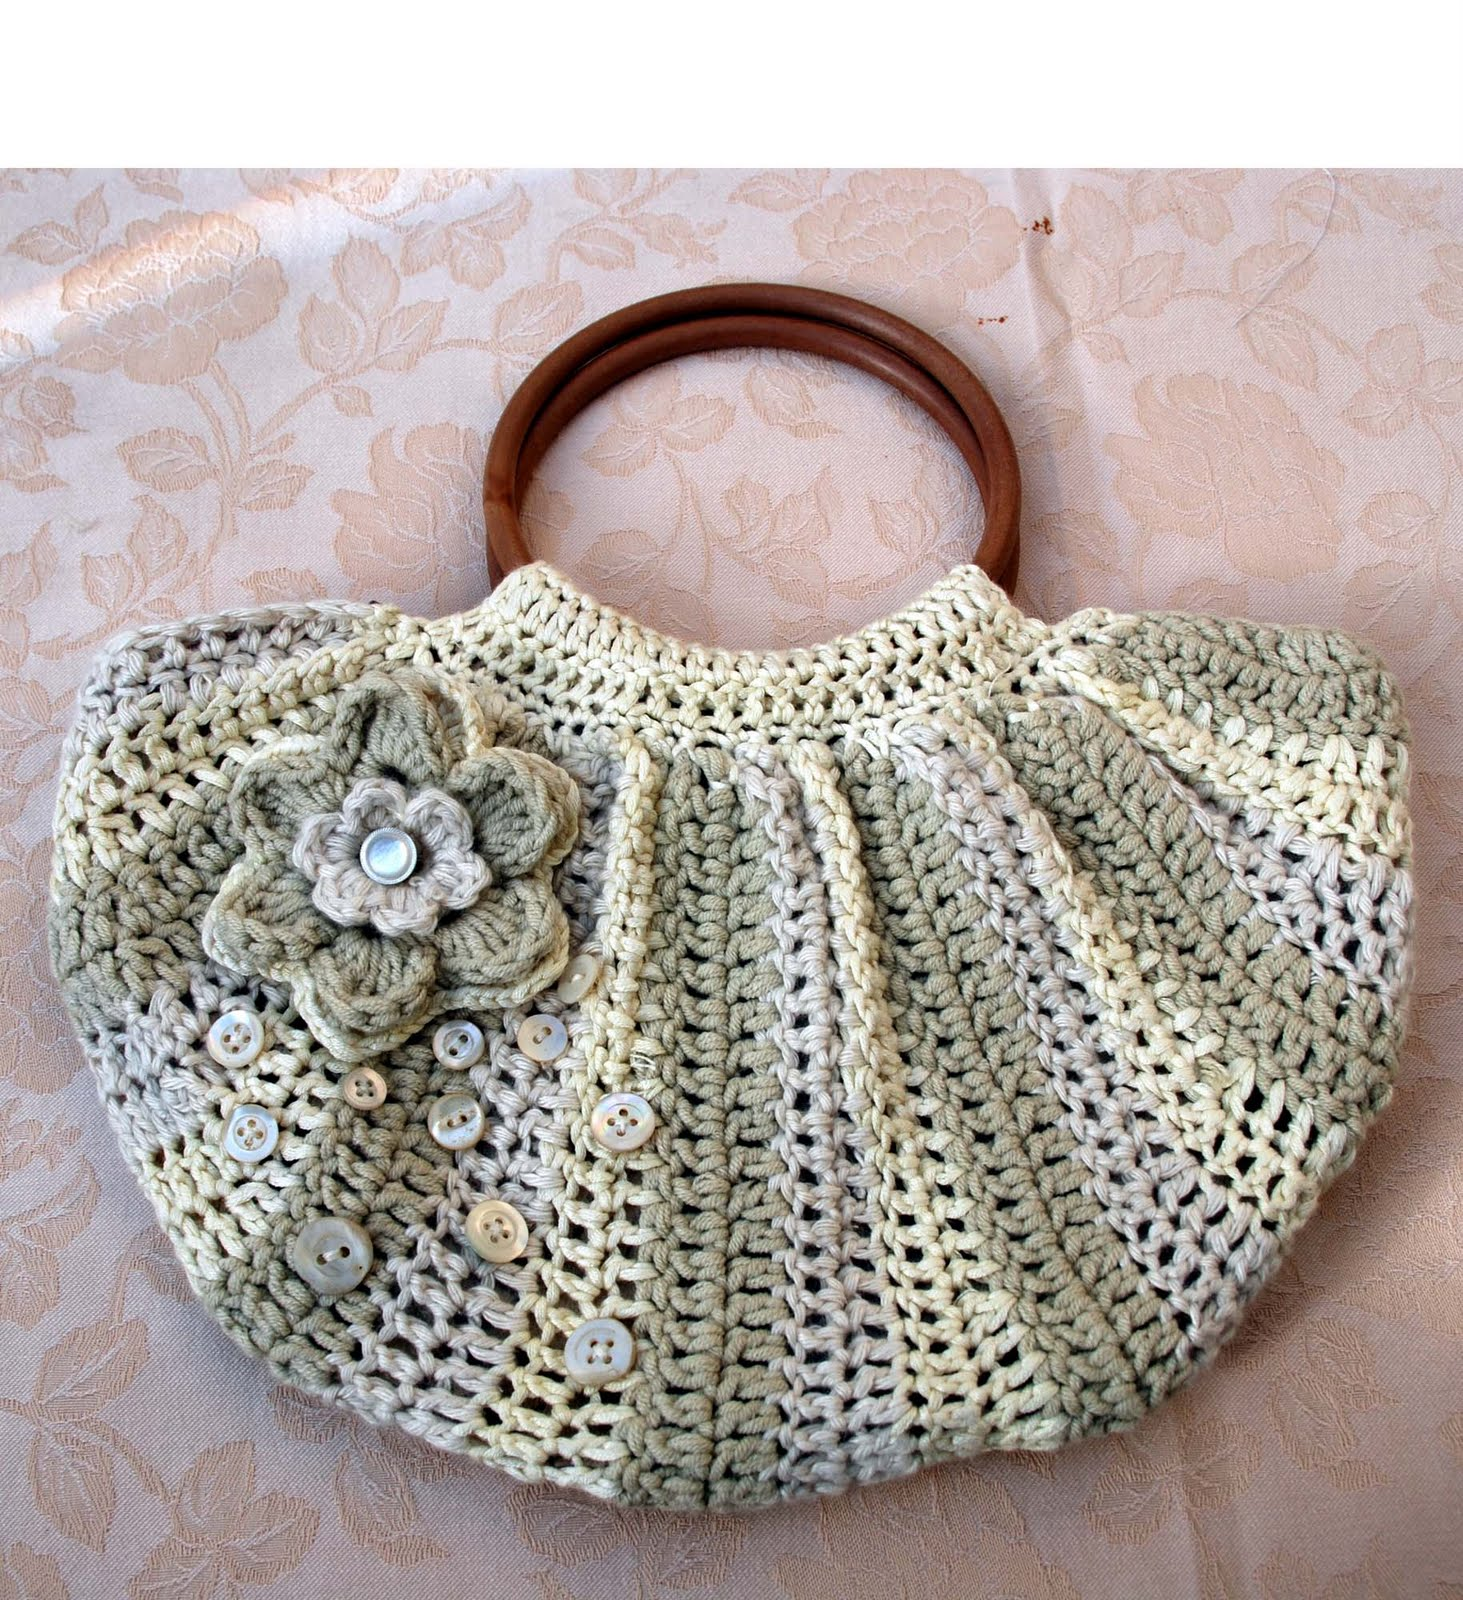 Crochet Pouch : Knitting Patterns Free: crochet bag